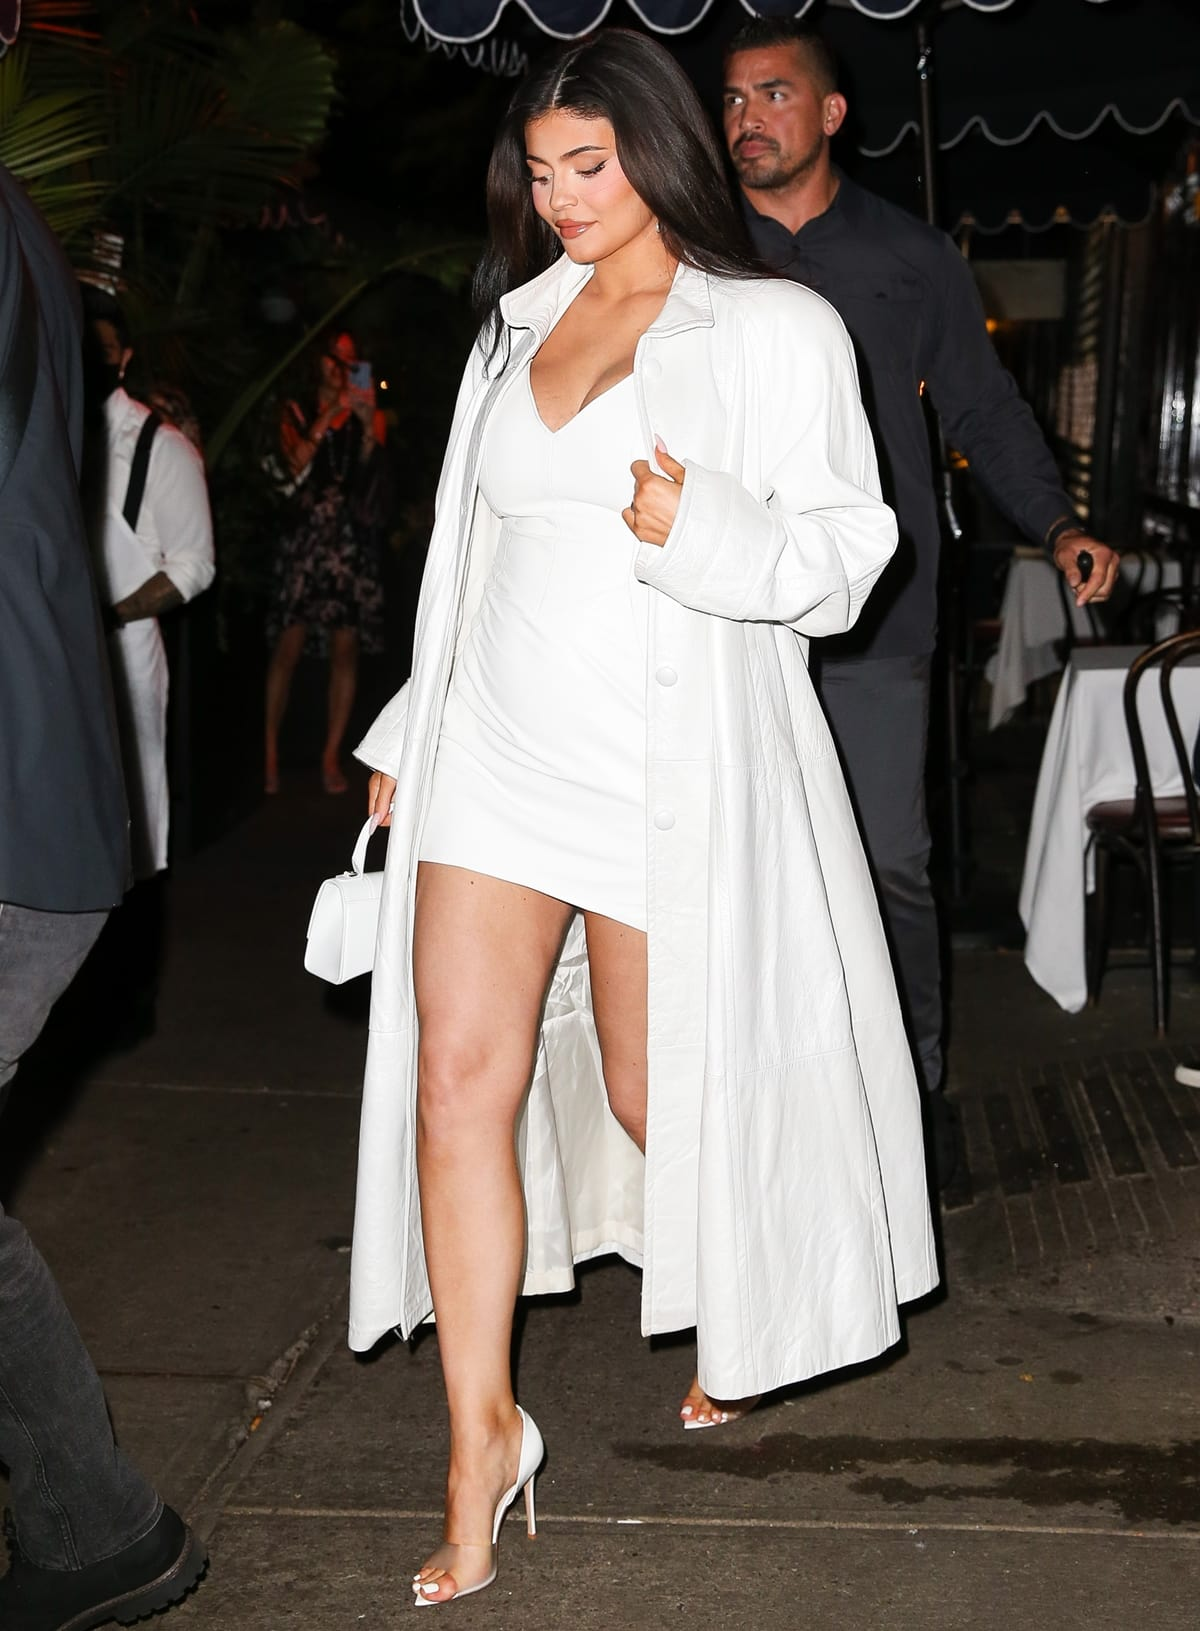 Pregnant Kylie Jenner leaves Carbone, an Italian-American restaurant located in Greenwich Village, New York City